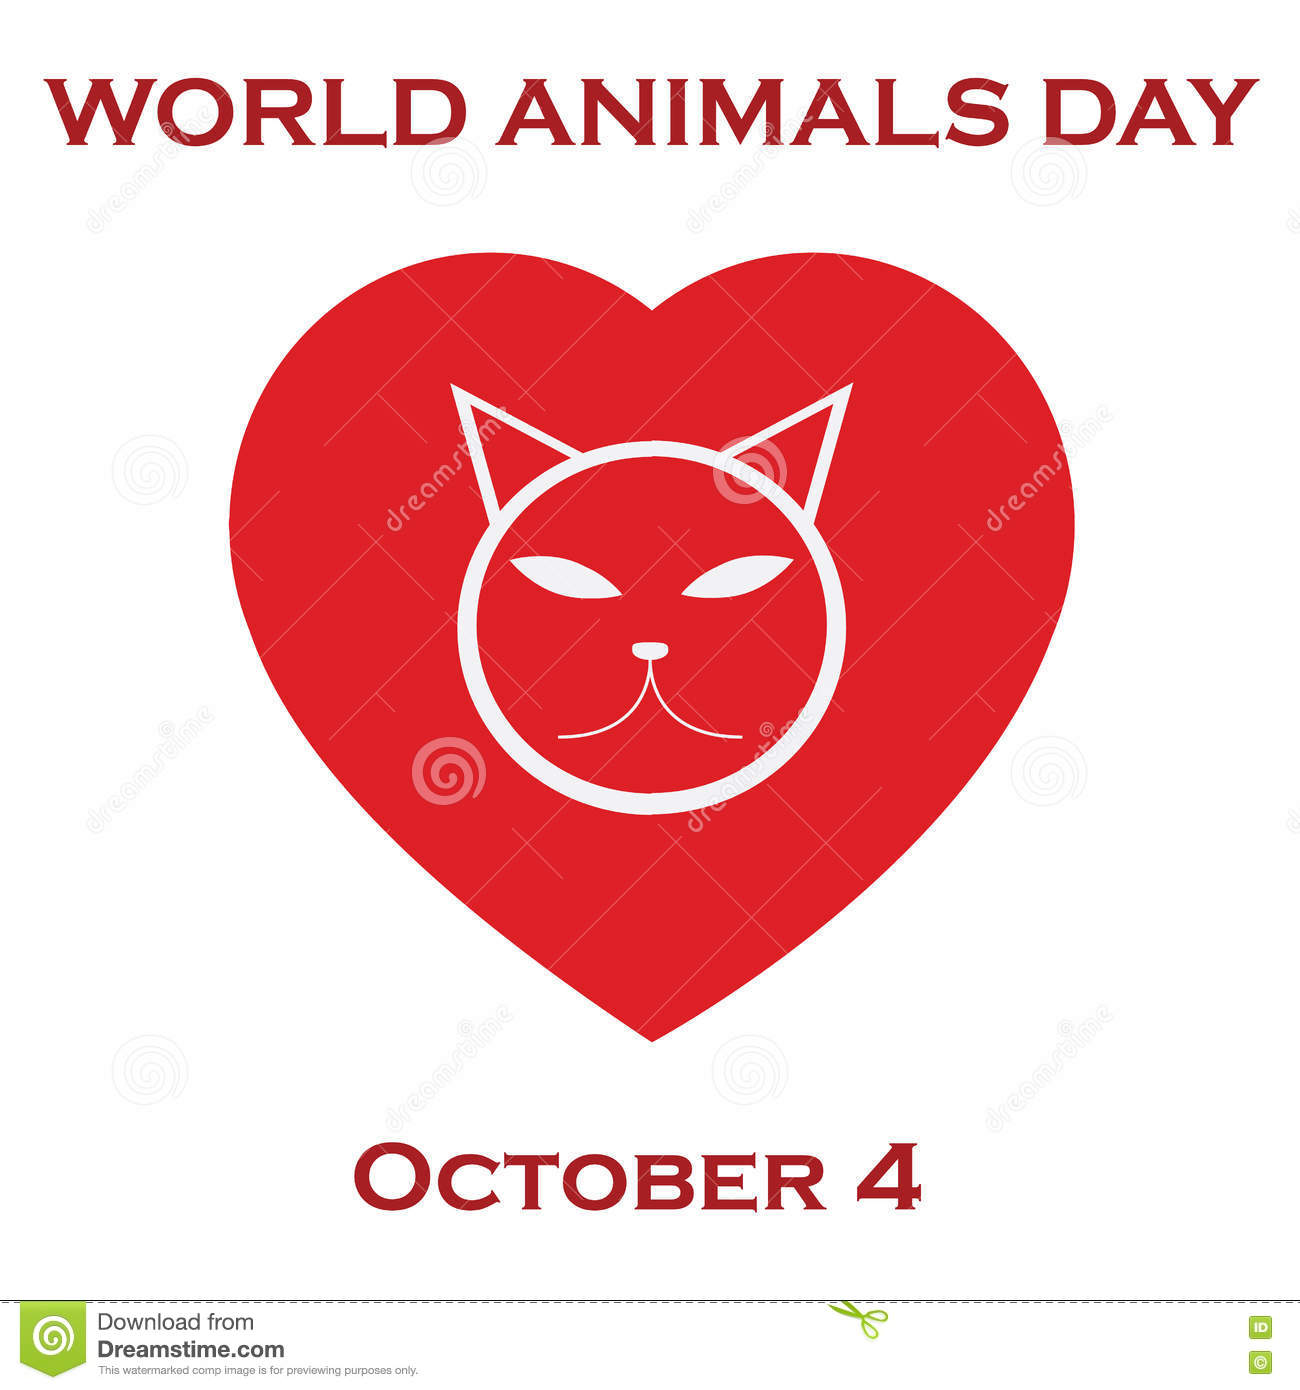 Animals on the planet, animal shelter. World animal`s day.